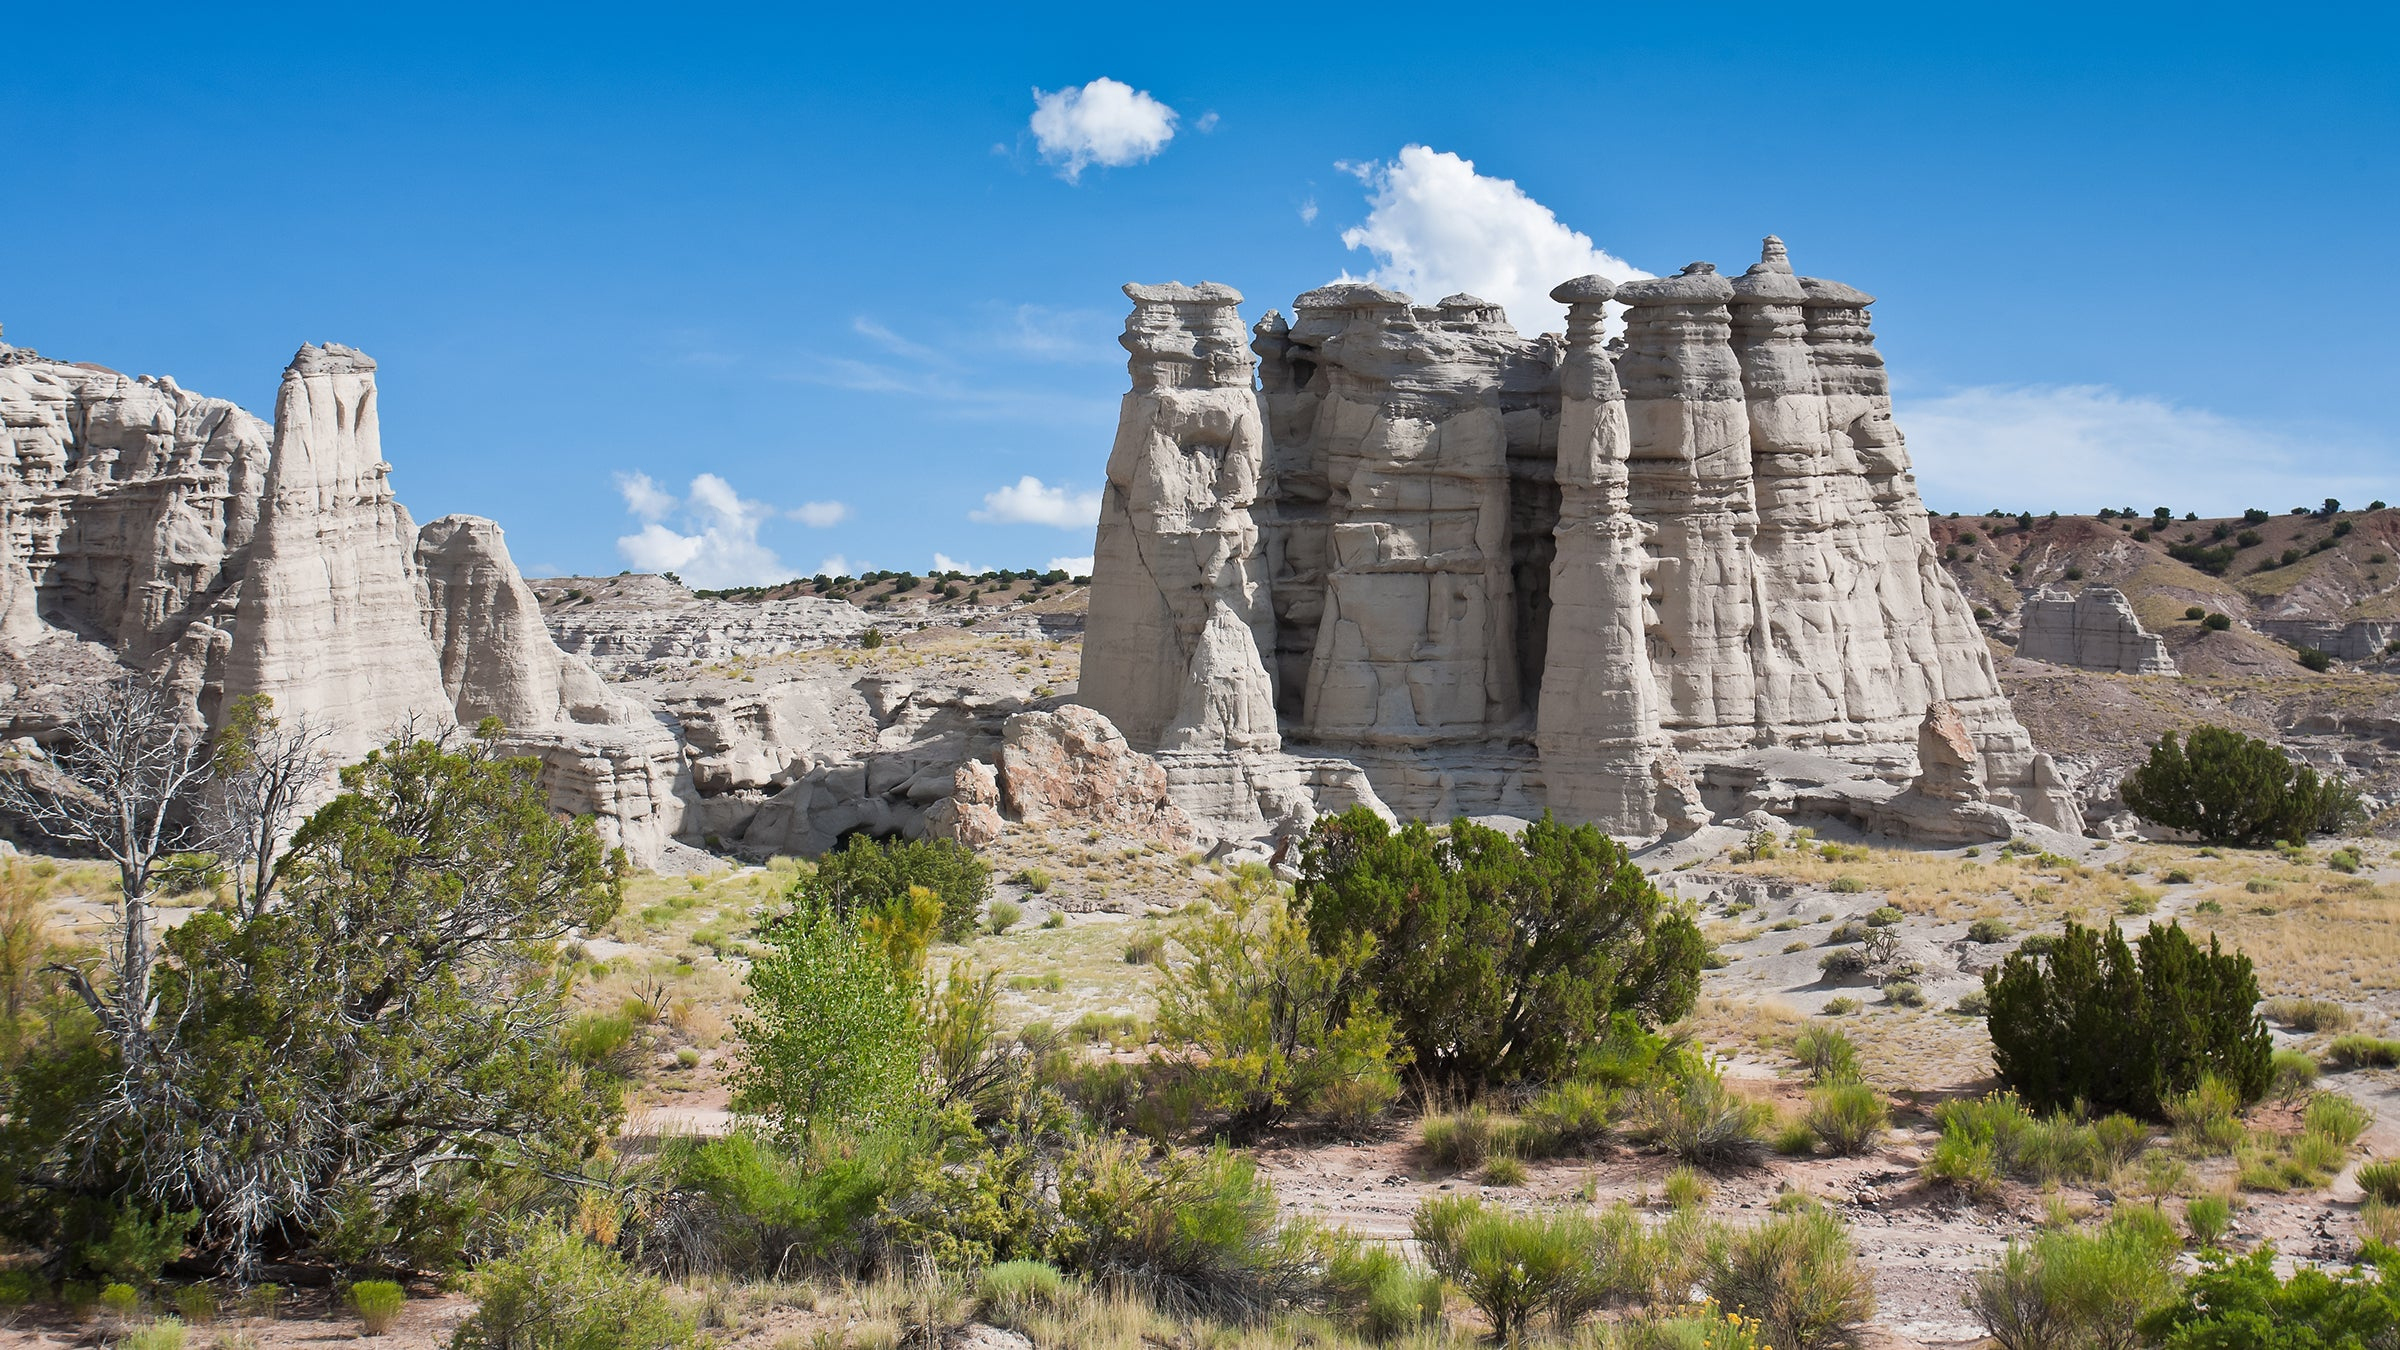 White limestone spears pearse the sky in New Mexico